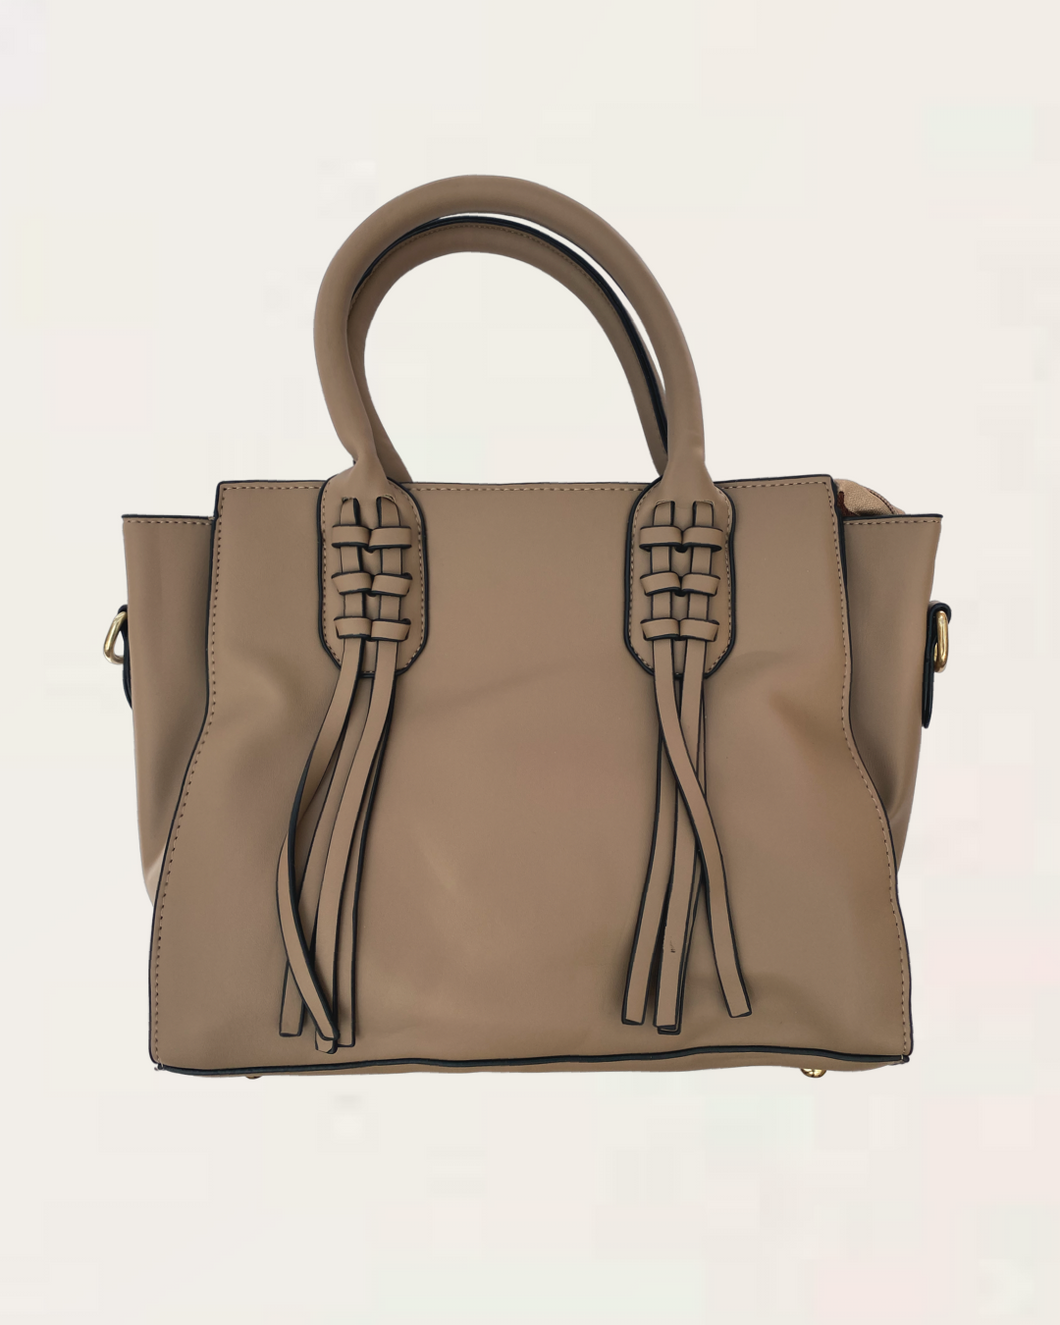 Eva Large Taupe Tote Shoulder Handbag